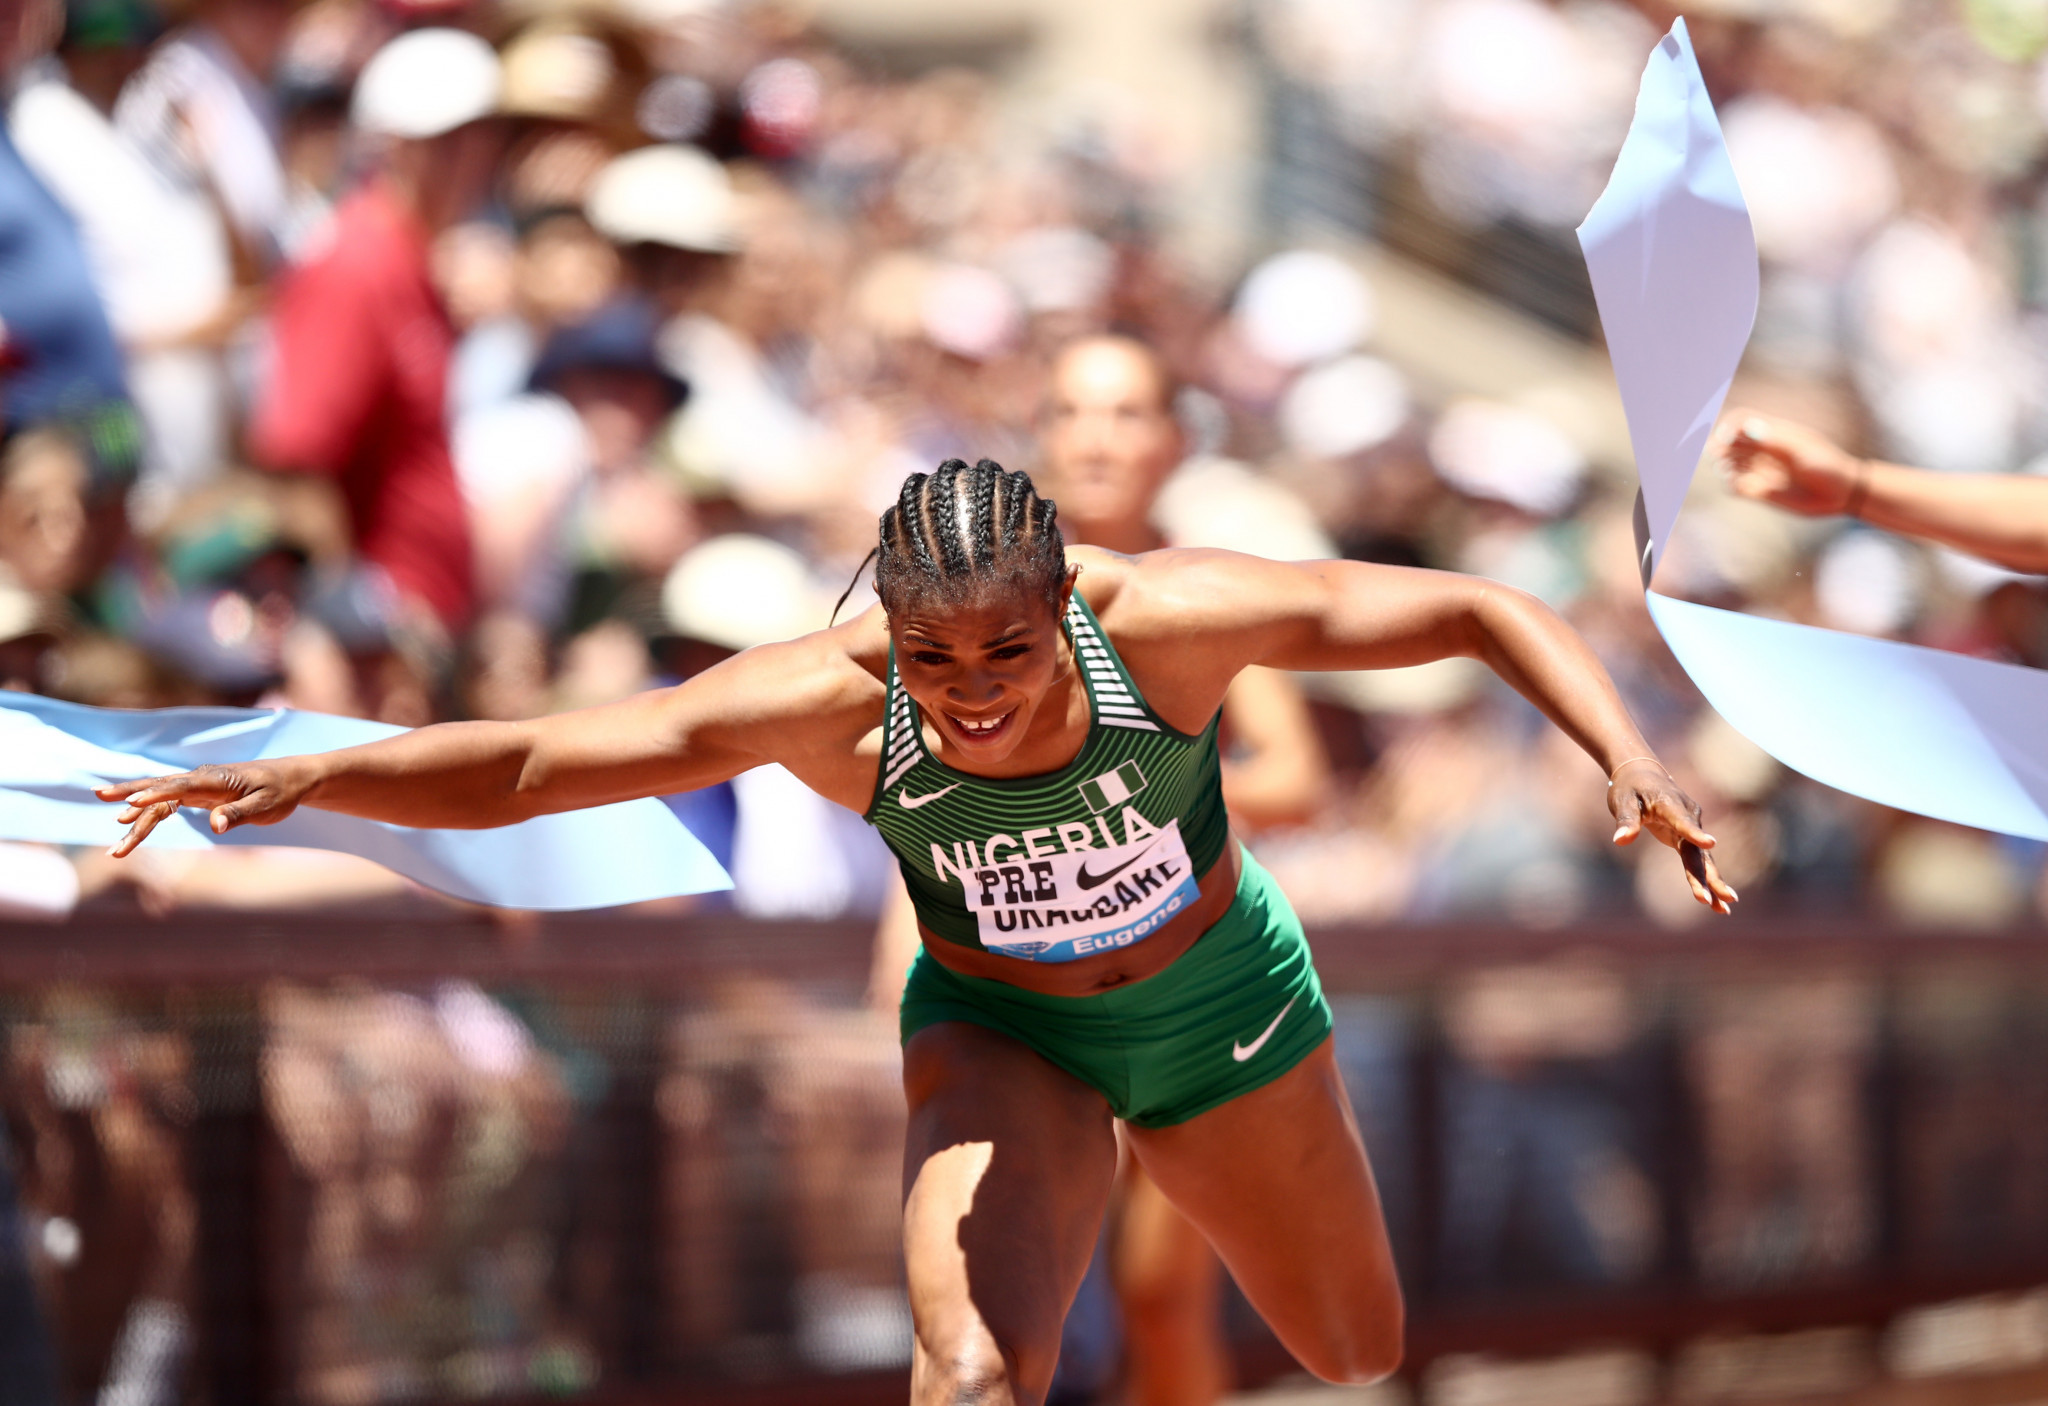 Global Athlete open letter publicly backs Nigerian sprinter Okagbare